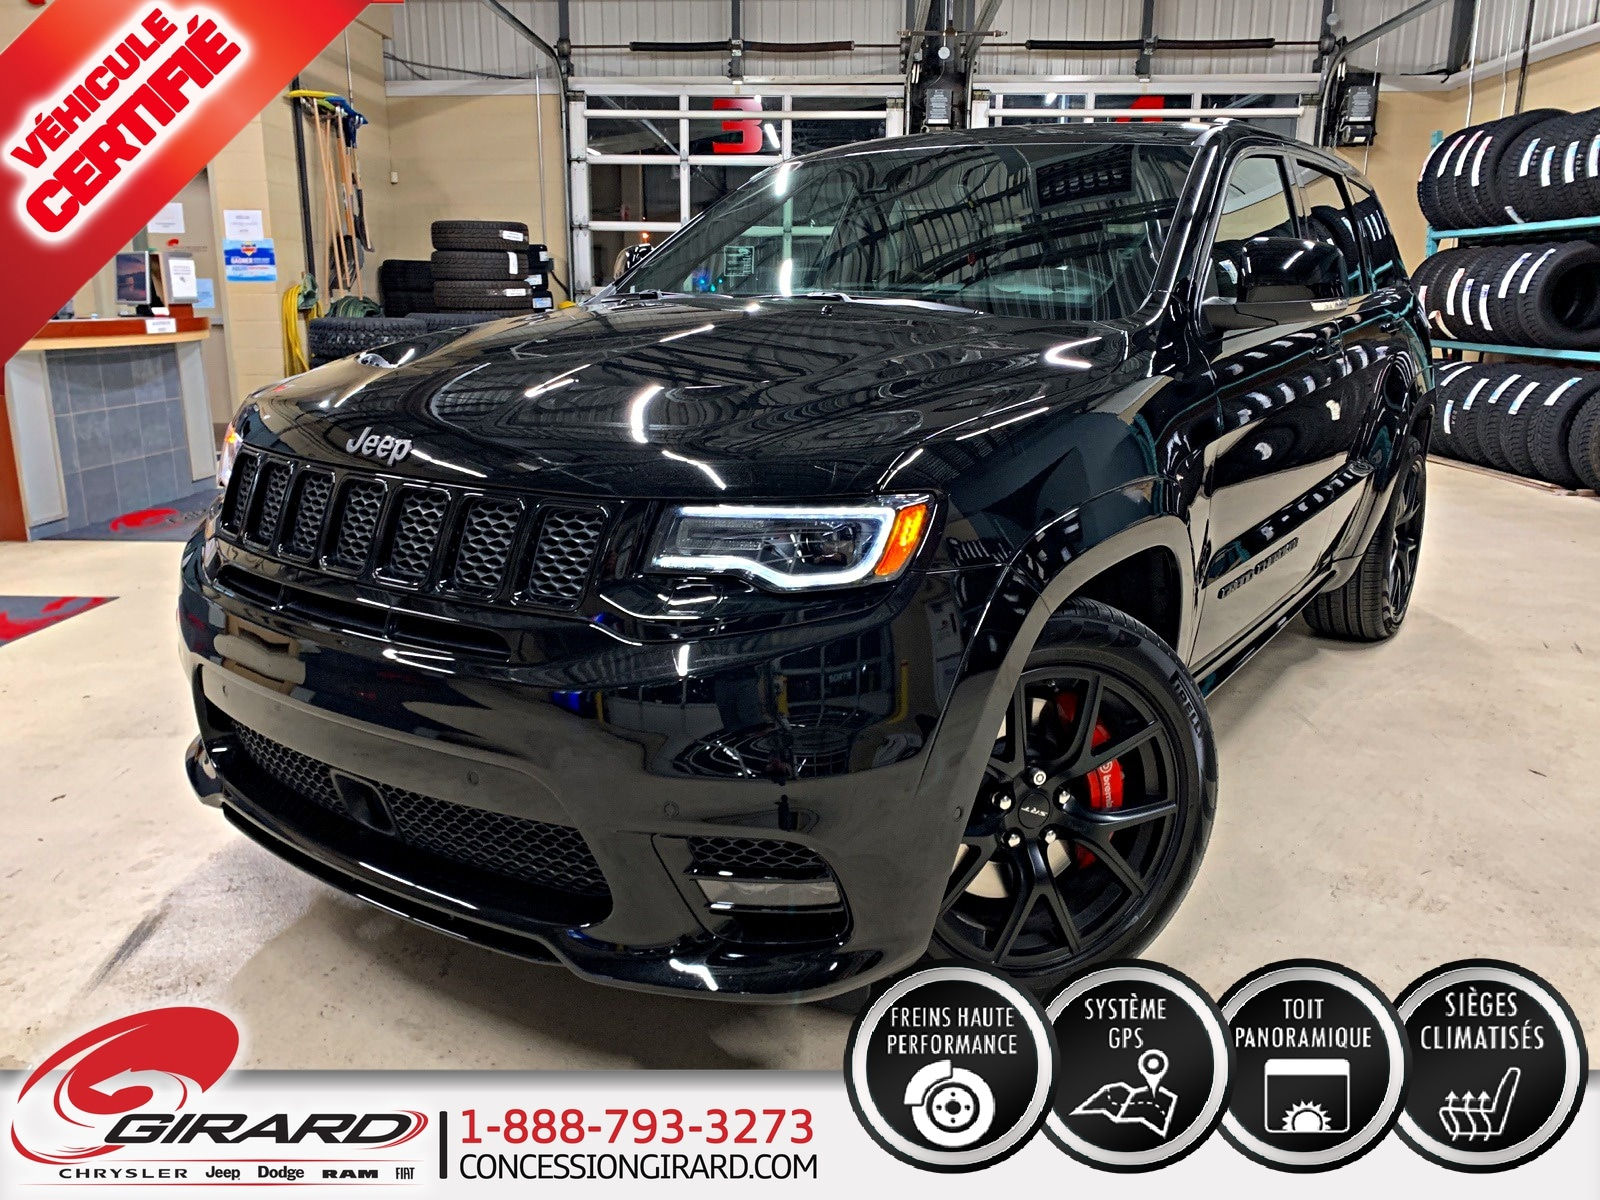 Jeep Grand Cherokee SRT-8*ALL BLACK*FULL*NAV*AUDIO HARMAN/KARDON* 2019